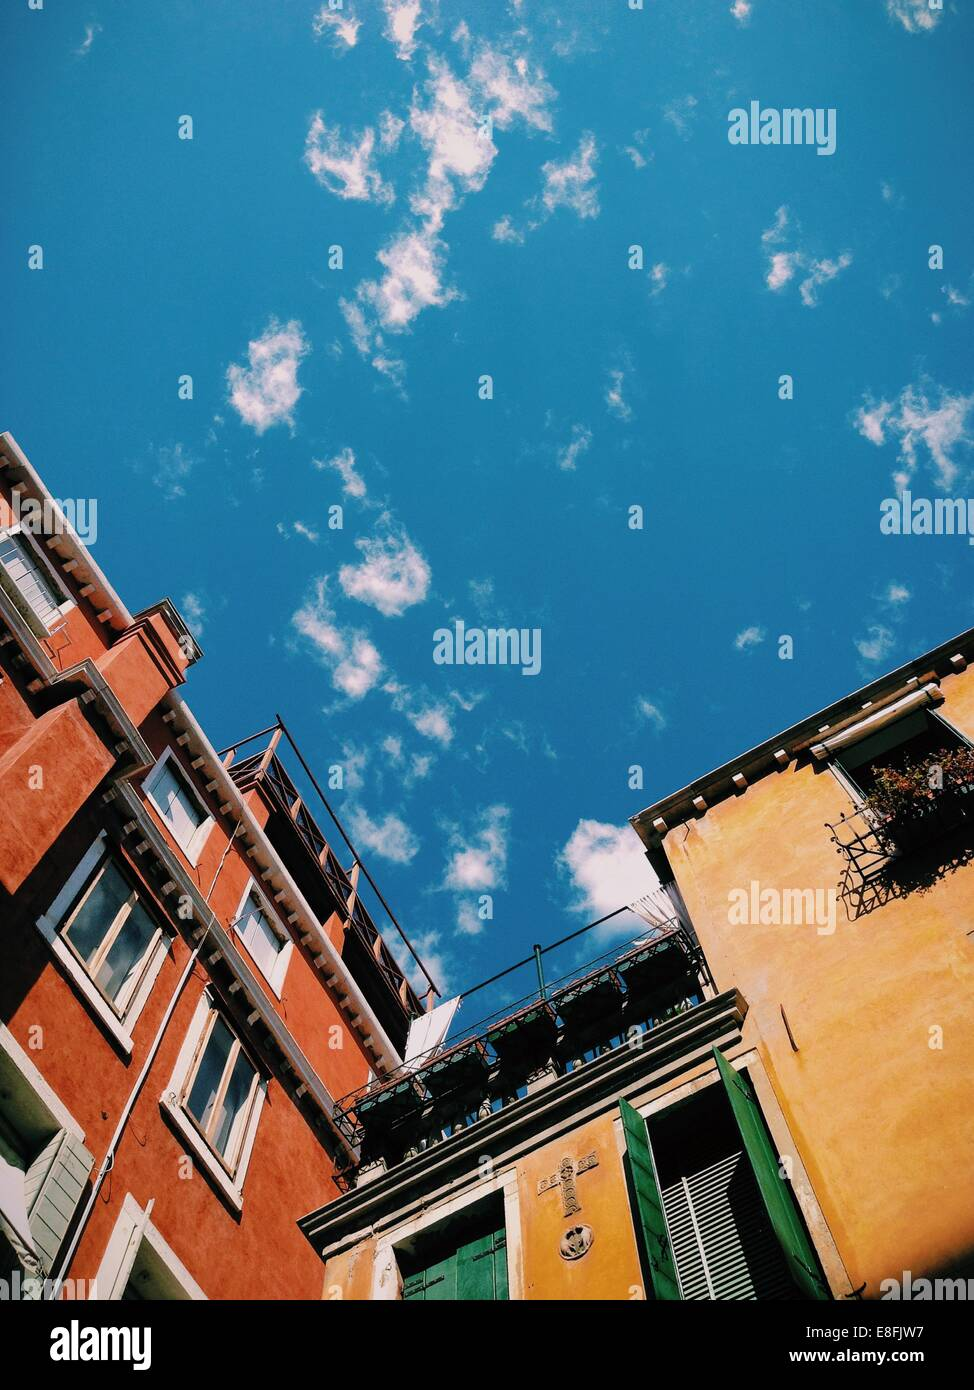 Italy, Venice, Sky over buildings - Stock Photo